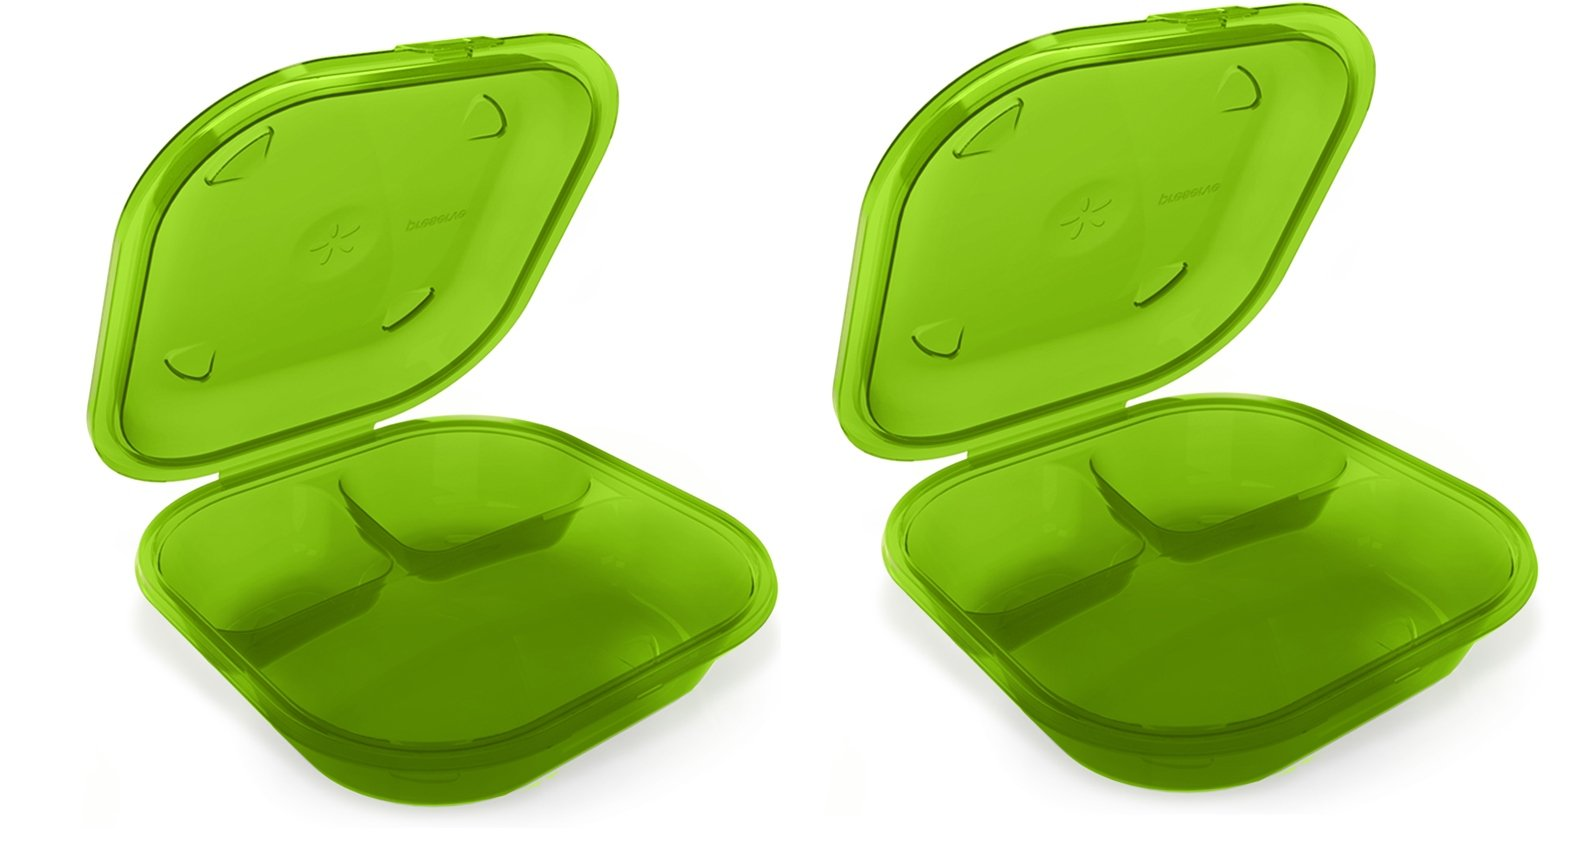 Preserve 2 Go BPA-Free, Reusable Take Out Box/Food Storage Containers (Set of 2), Apple Green by Preserve